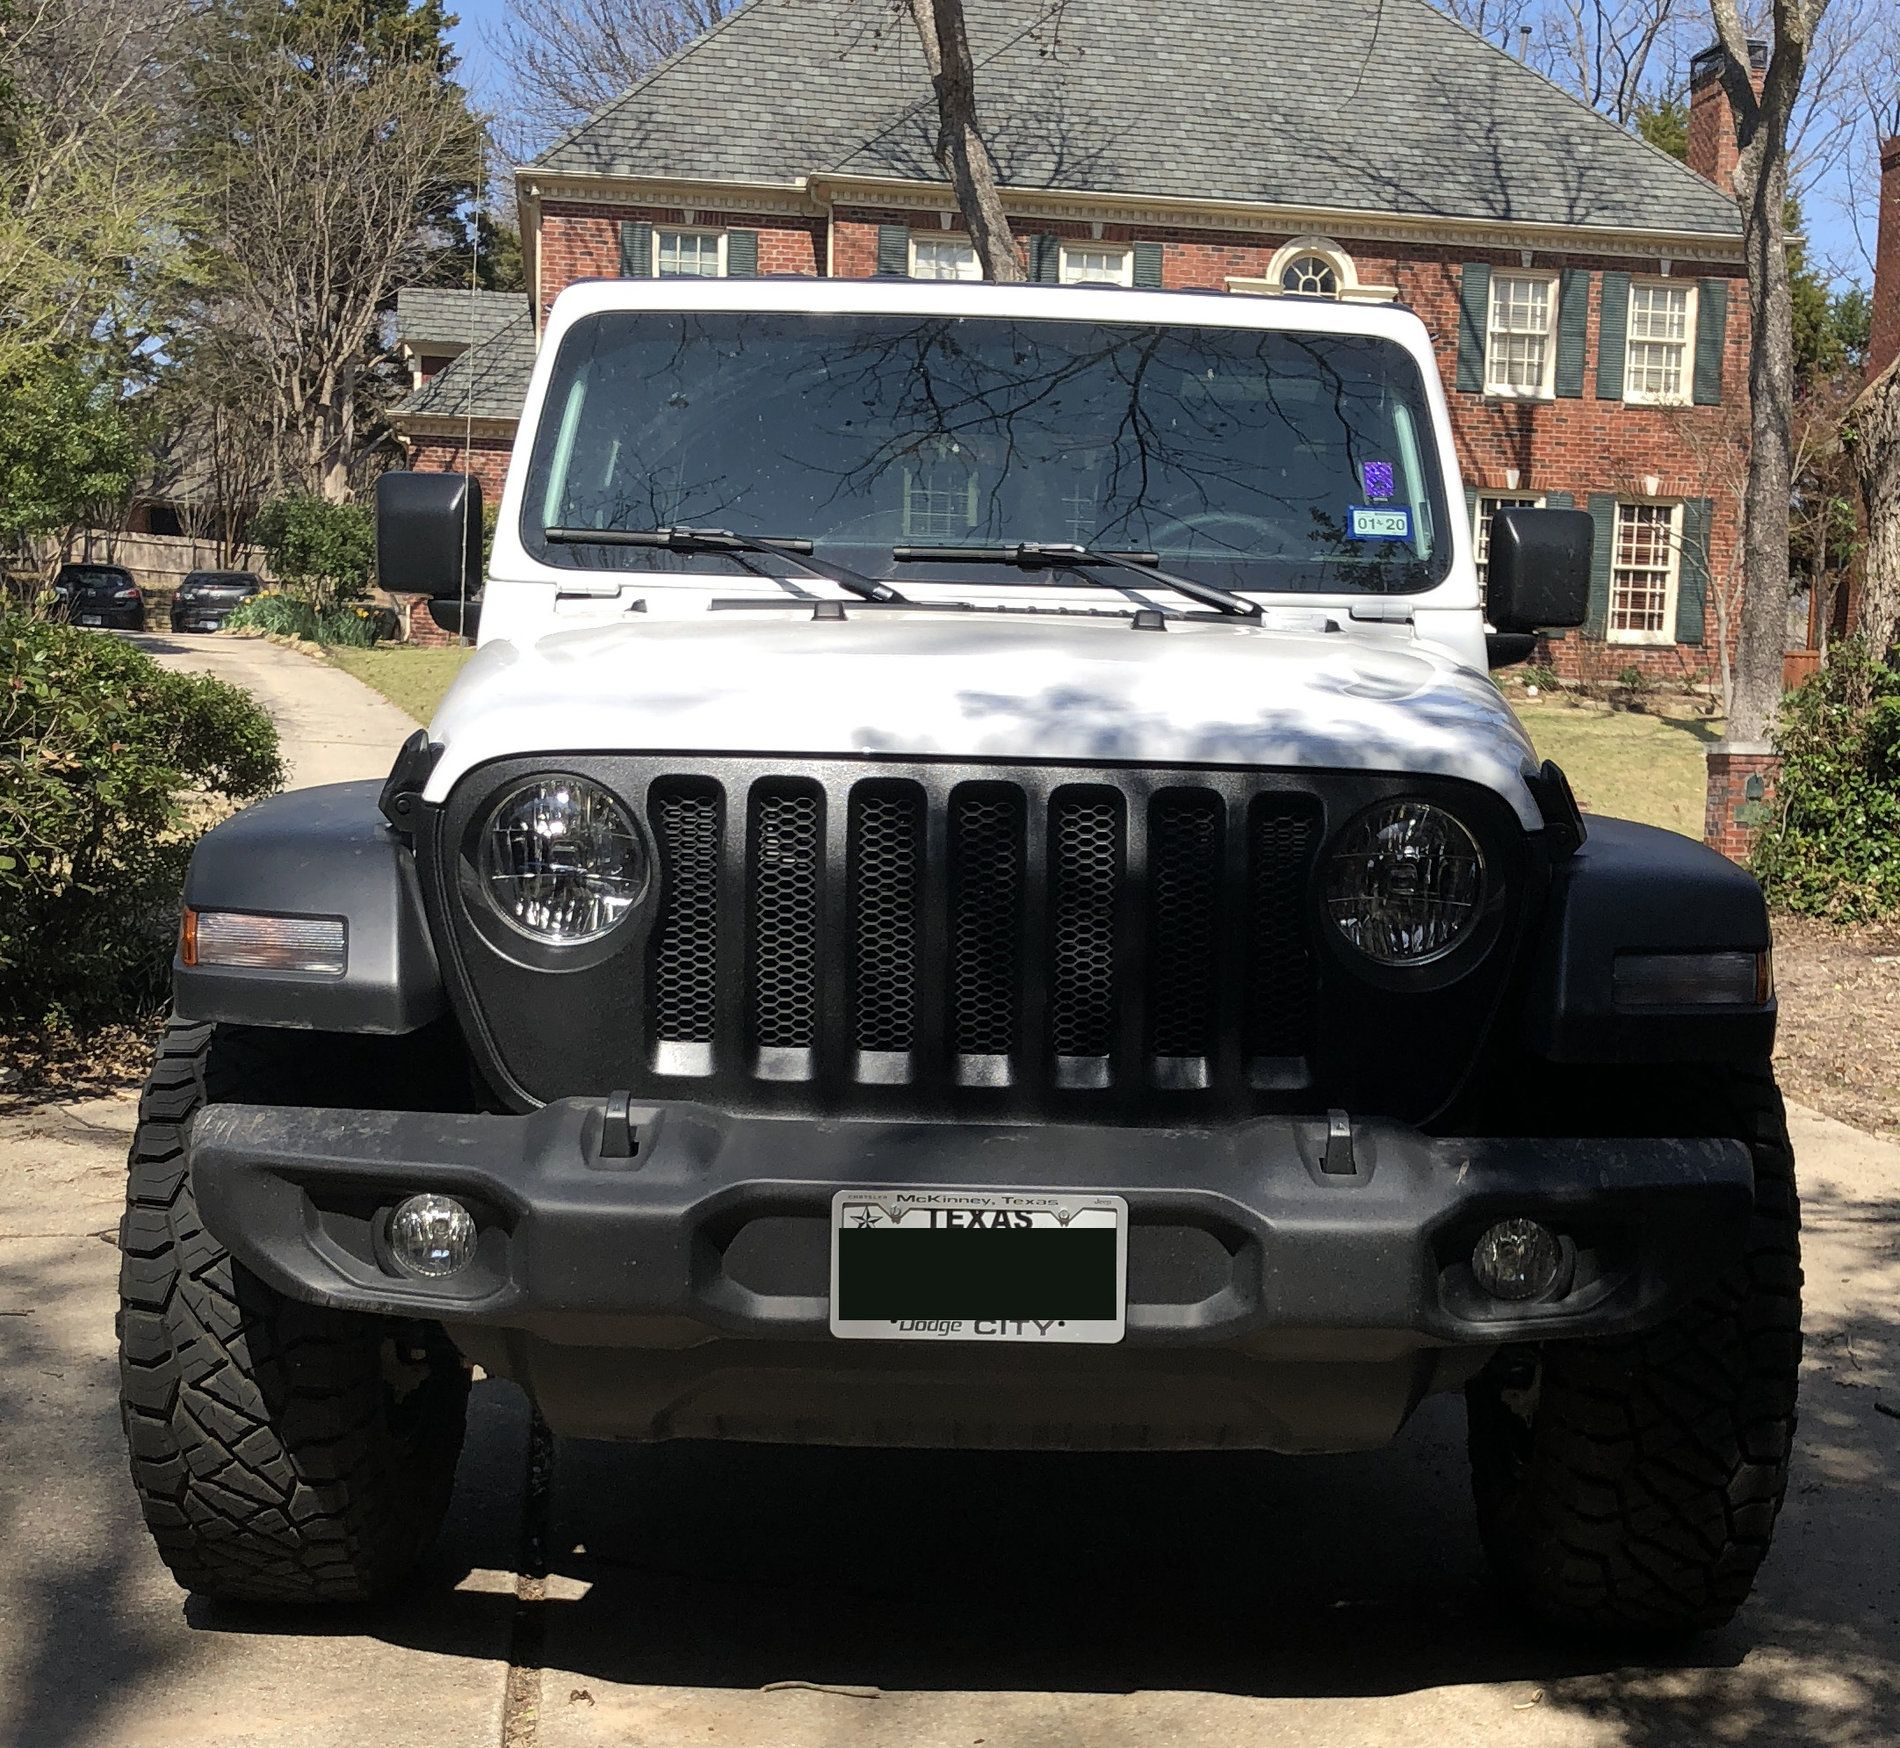 Blacking Out The Grill Page 2 2018 Jeep Wrangler Forums Jl Jt Pickup Truck Rubicon Sahara Sport Unlimited White Jeep Jeep Wrangler Forum Jeep